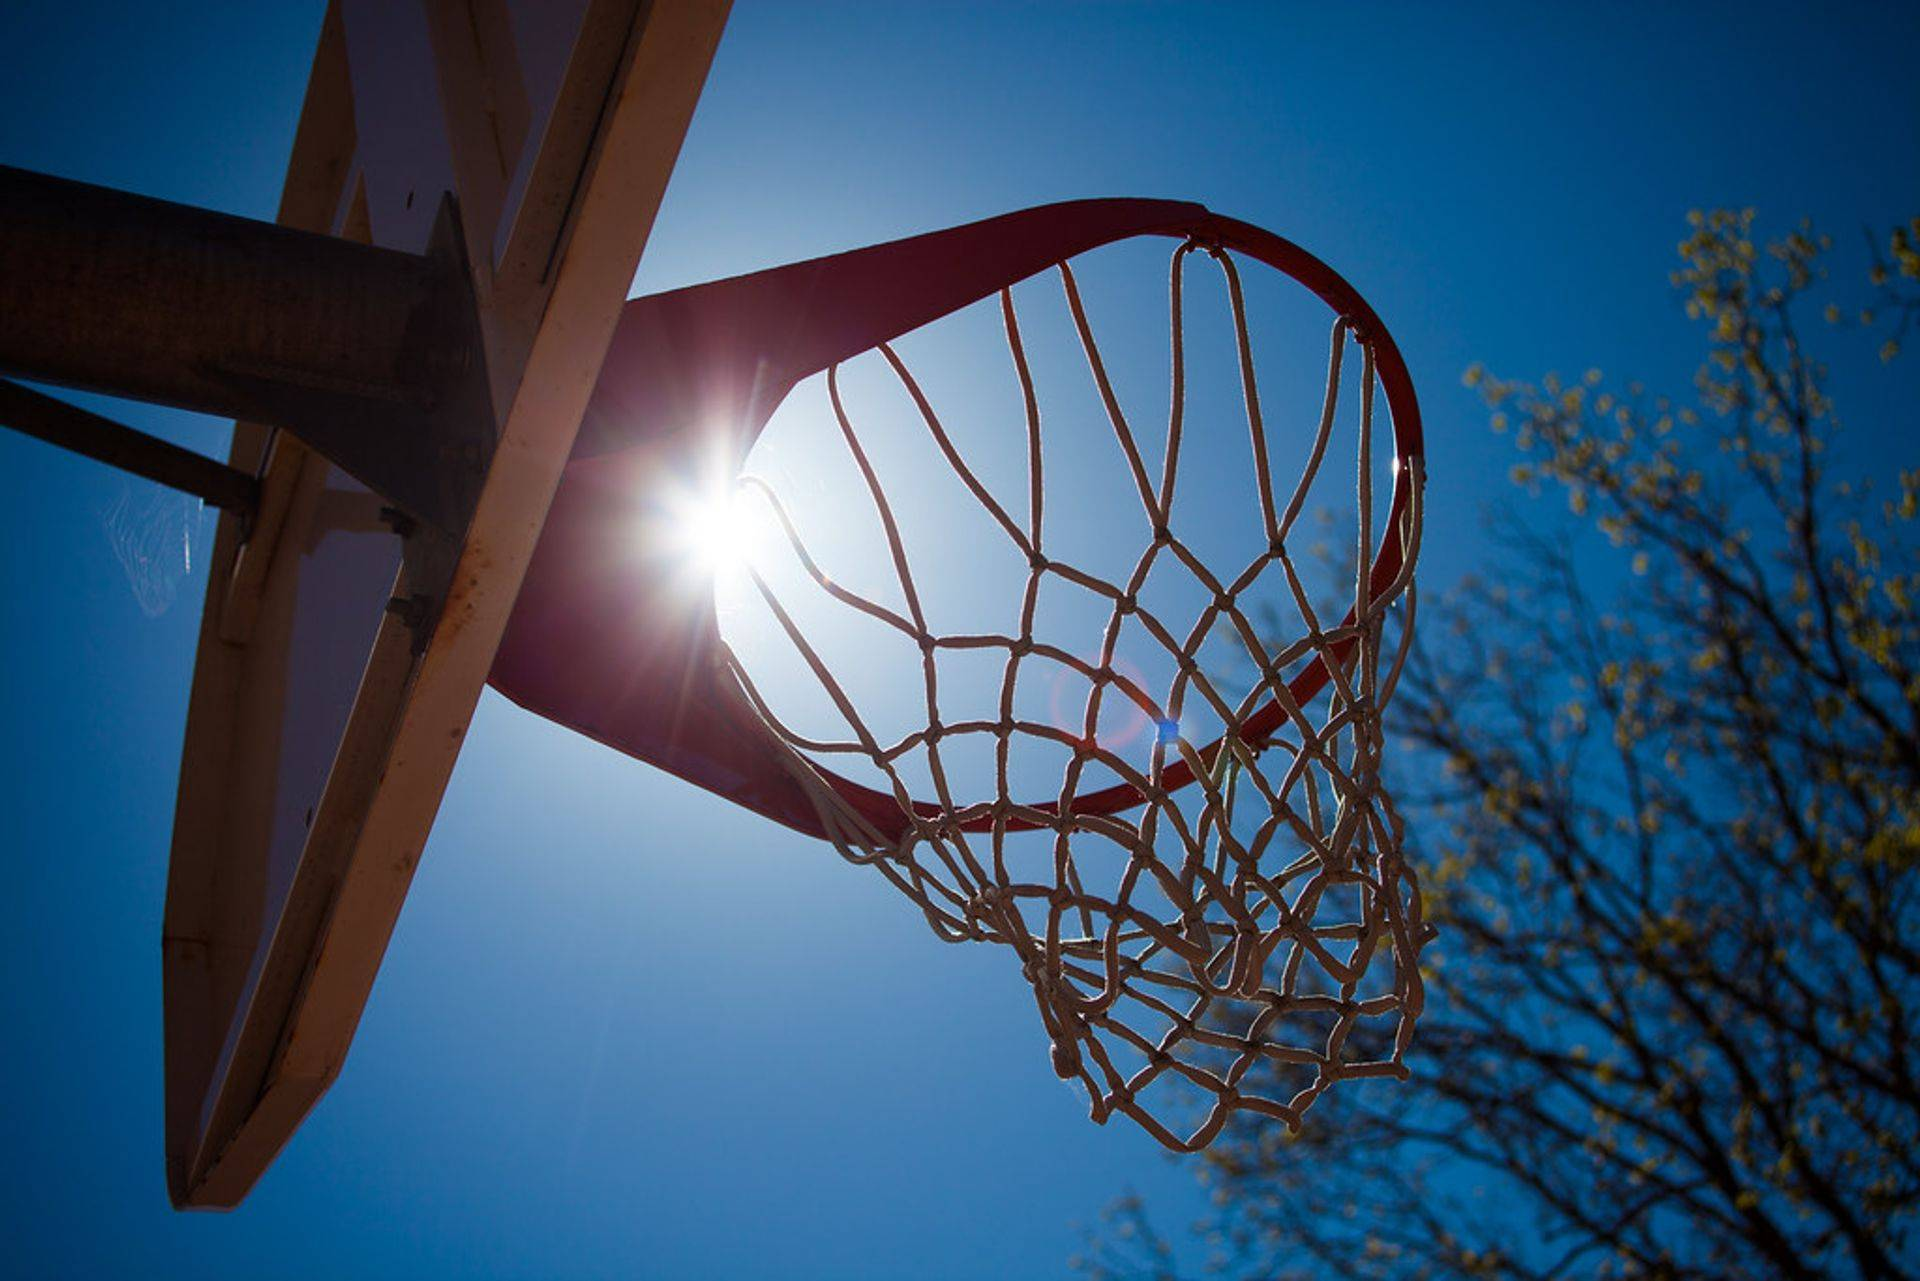 Basket ball training, camp, game, team, sports, tournament, practice